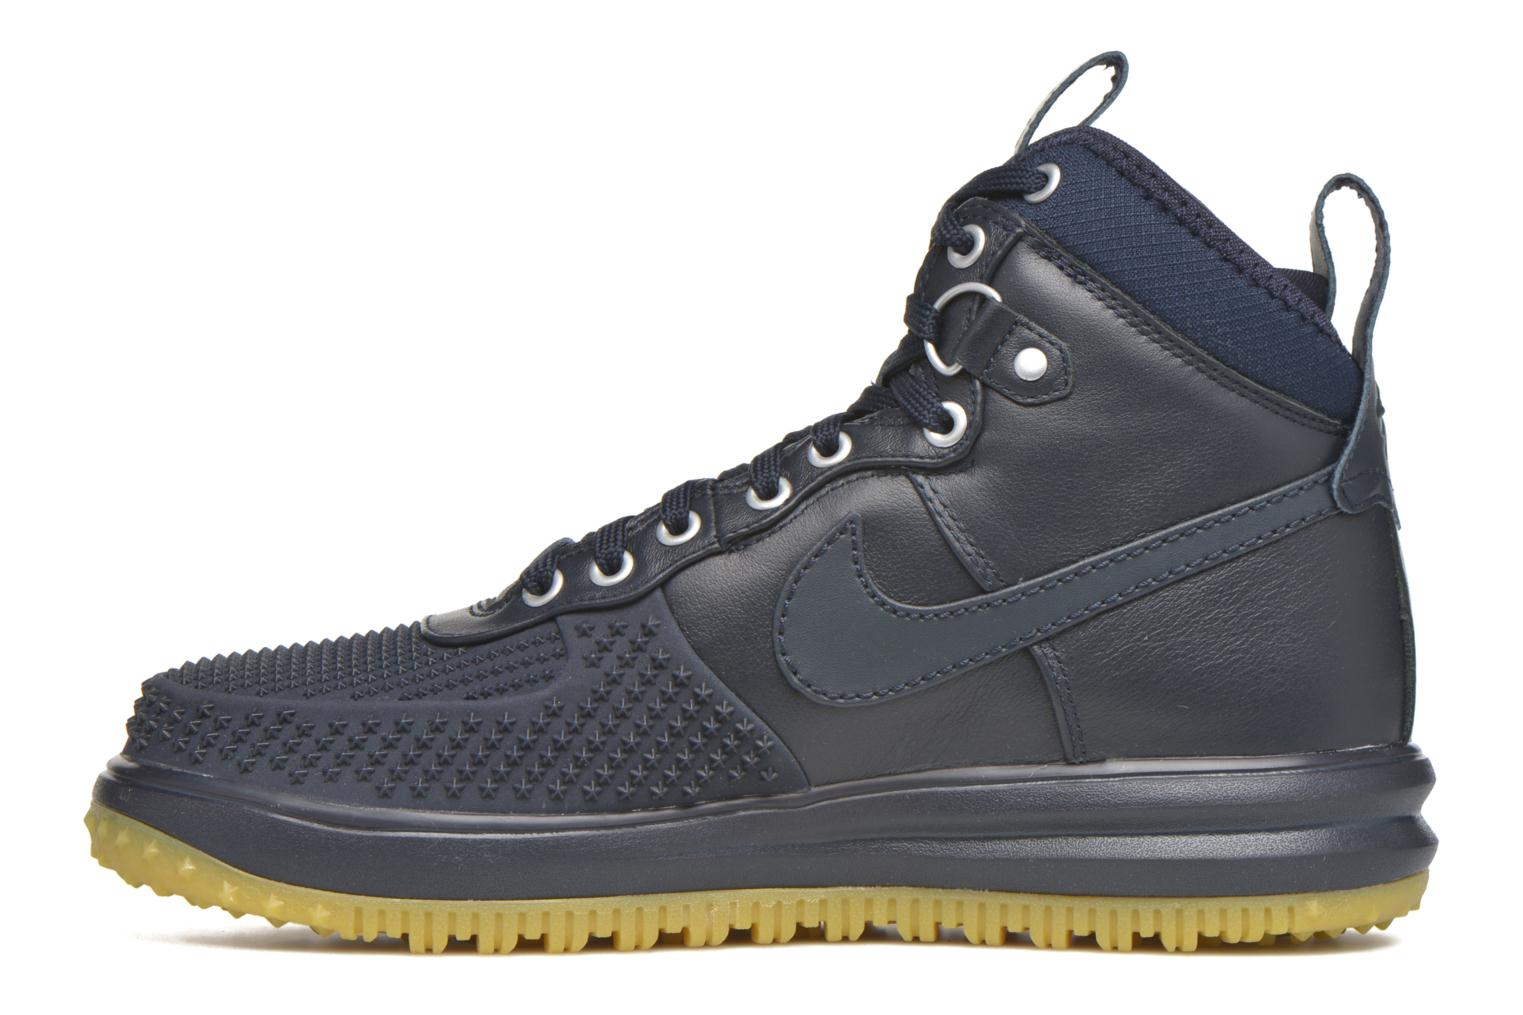 timeless design b387b da17b ... purchase dark obsidian dark obsidian nike lunar force 1 duckboot bleu  d7e0c c8123